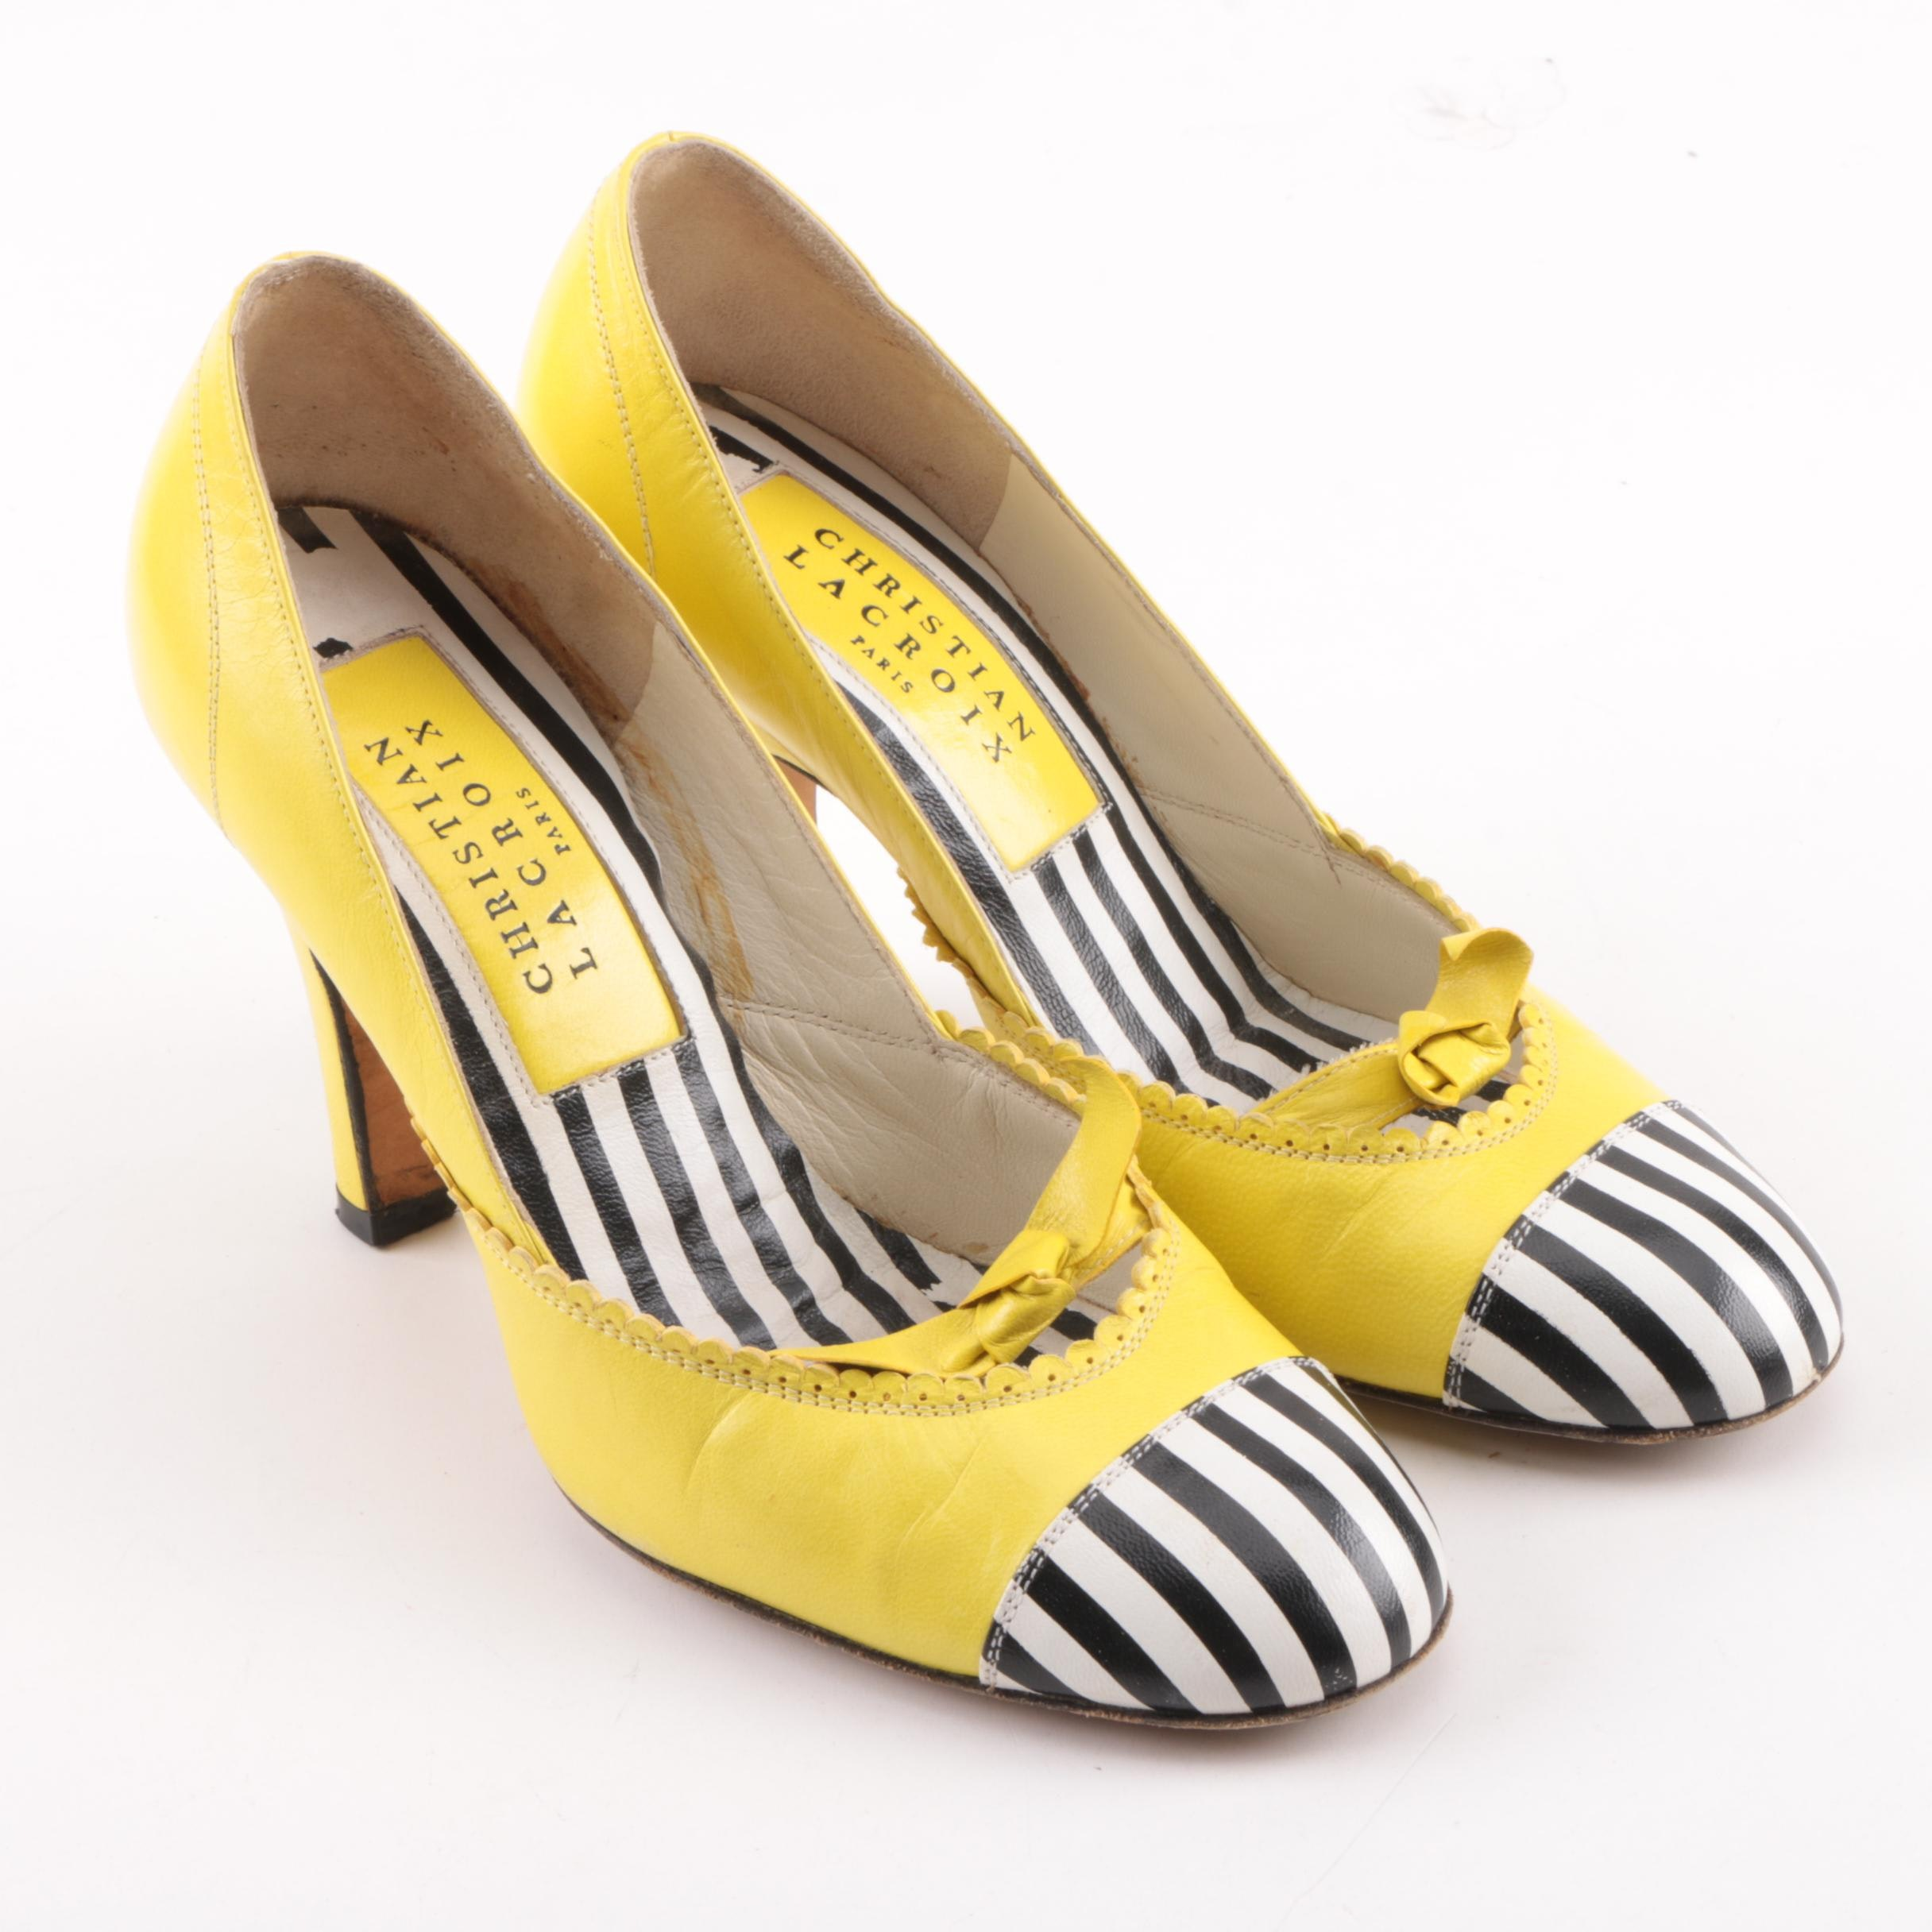 Vintage Christian Lacroix of Paris Yellow and Black and White Striped Pumps